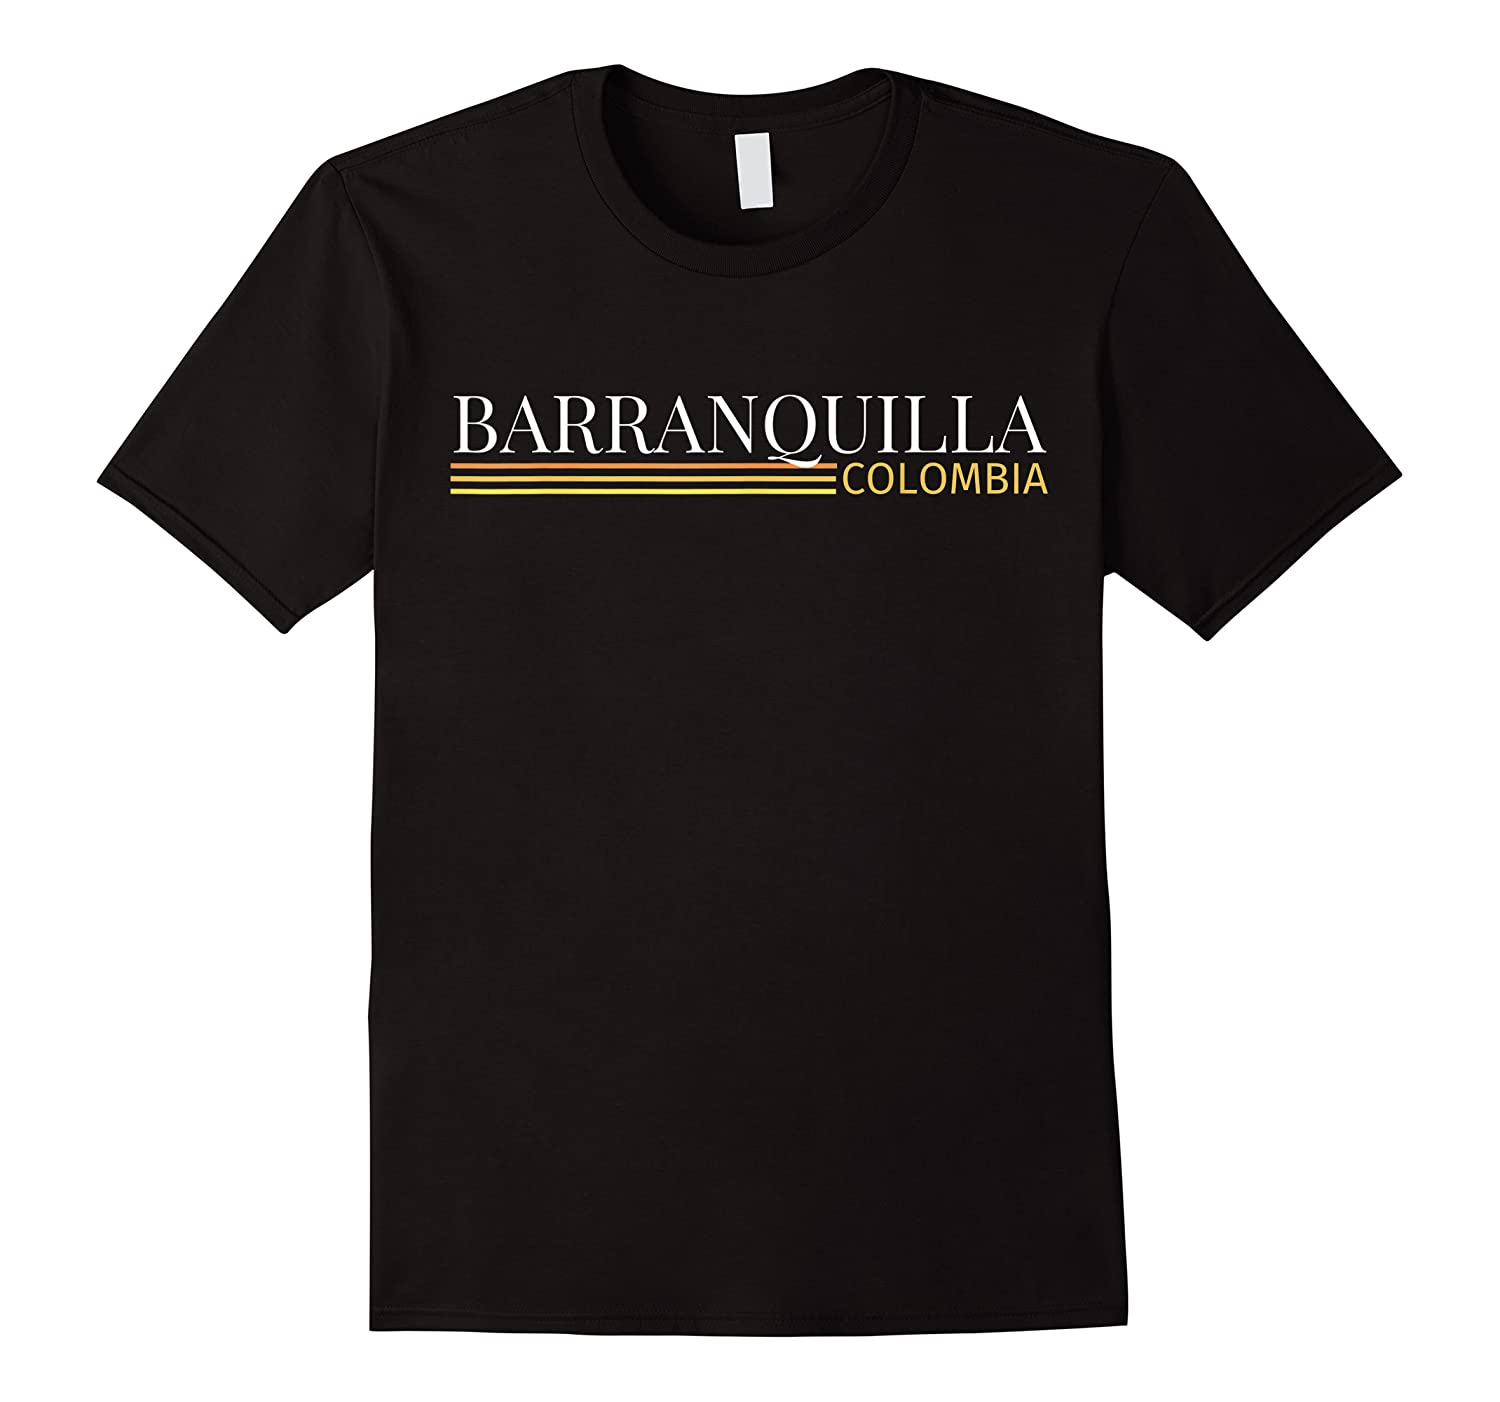 Barranquilla Colombia T-shirt